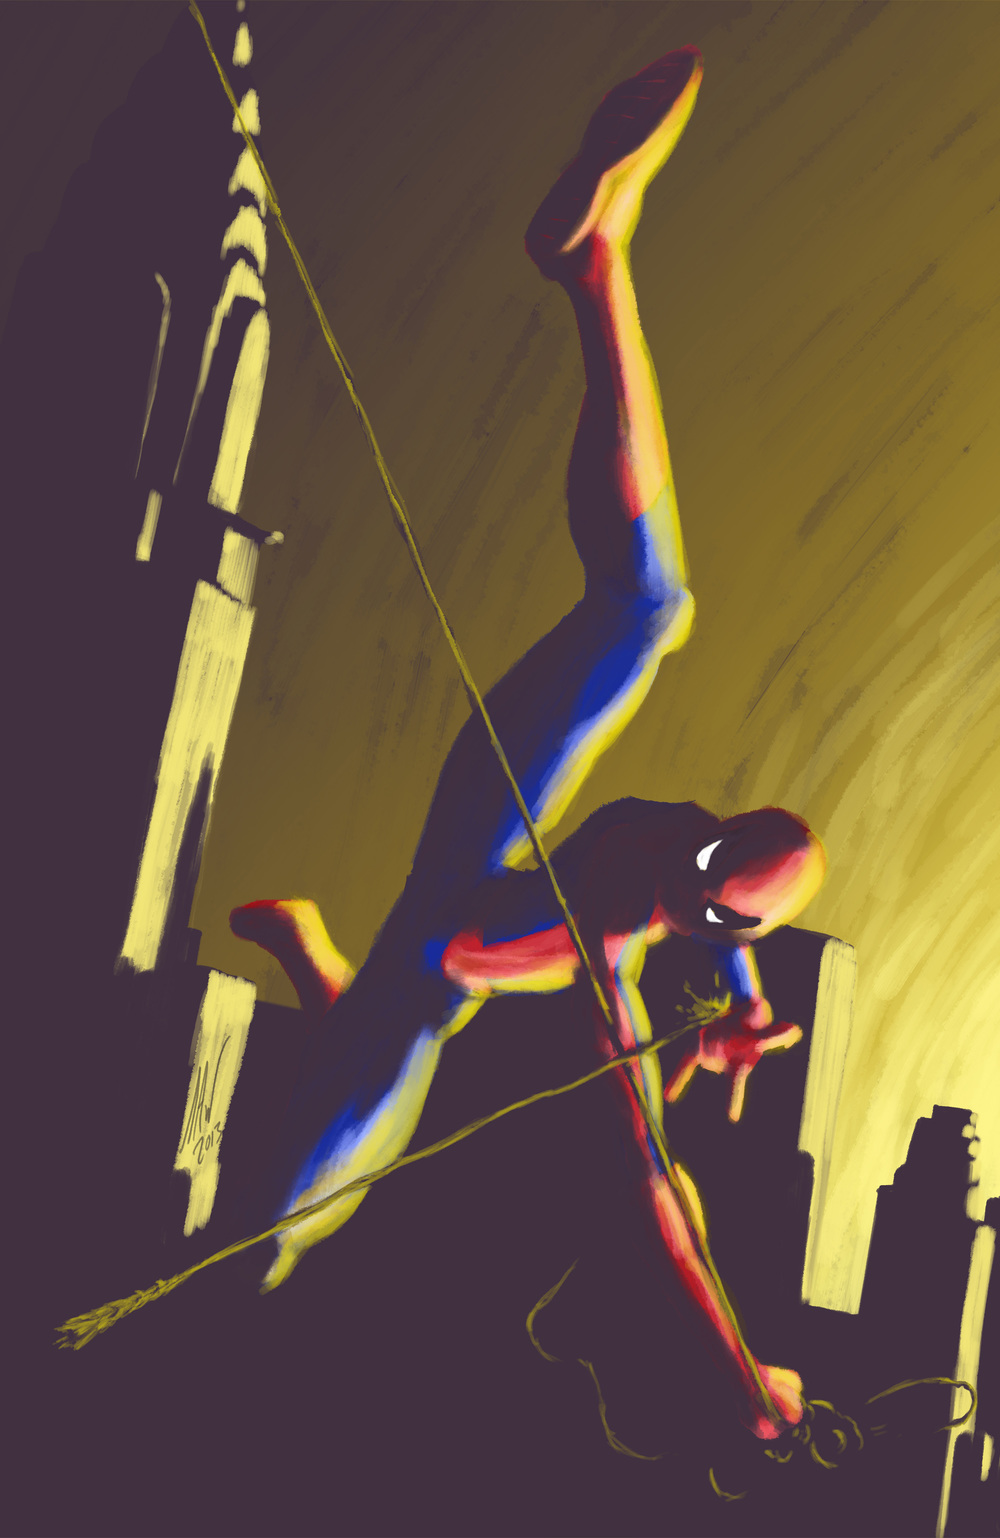 Spiderman-Swinging at Dawn 11x17.jpg